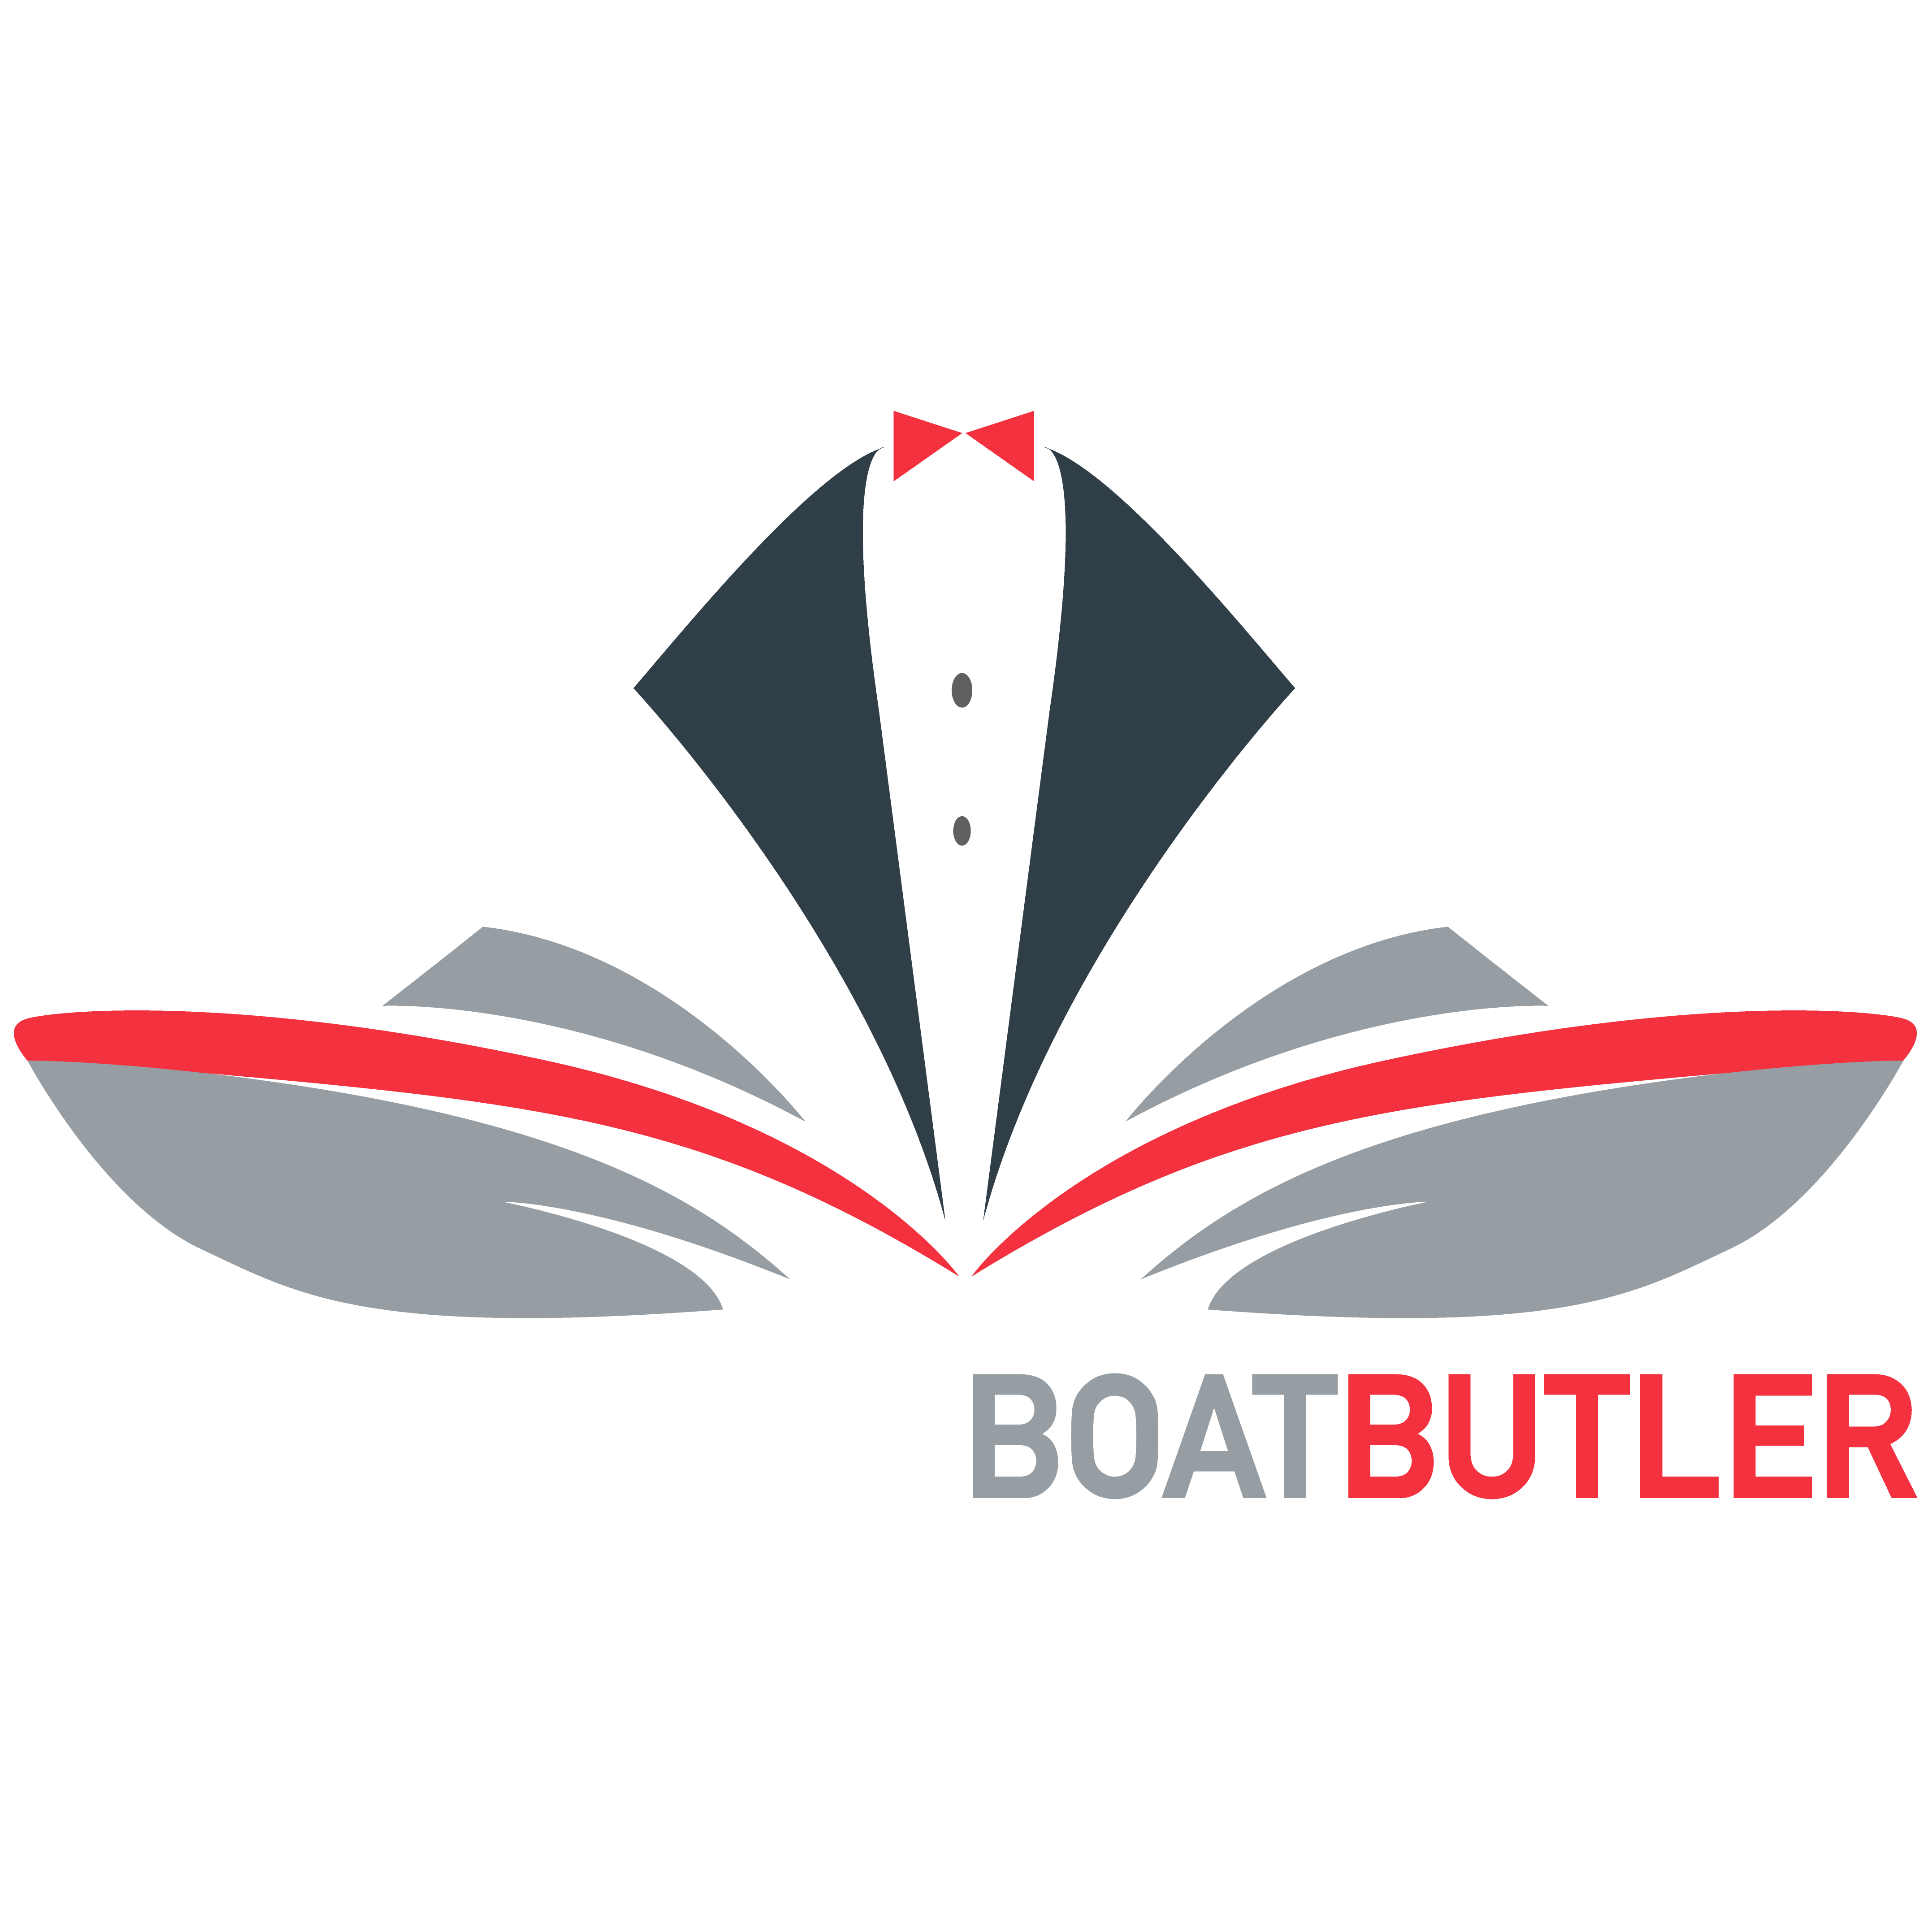 The Boat Butler